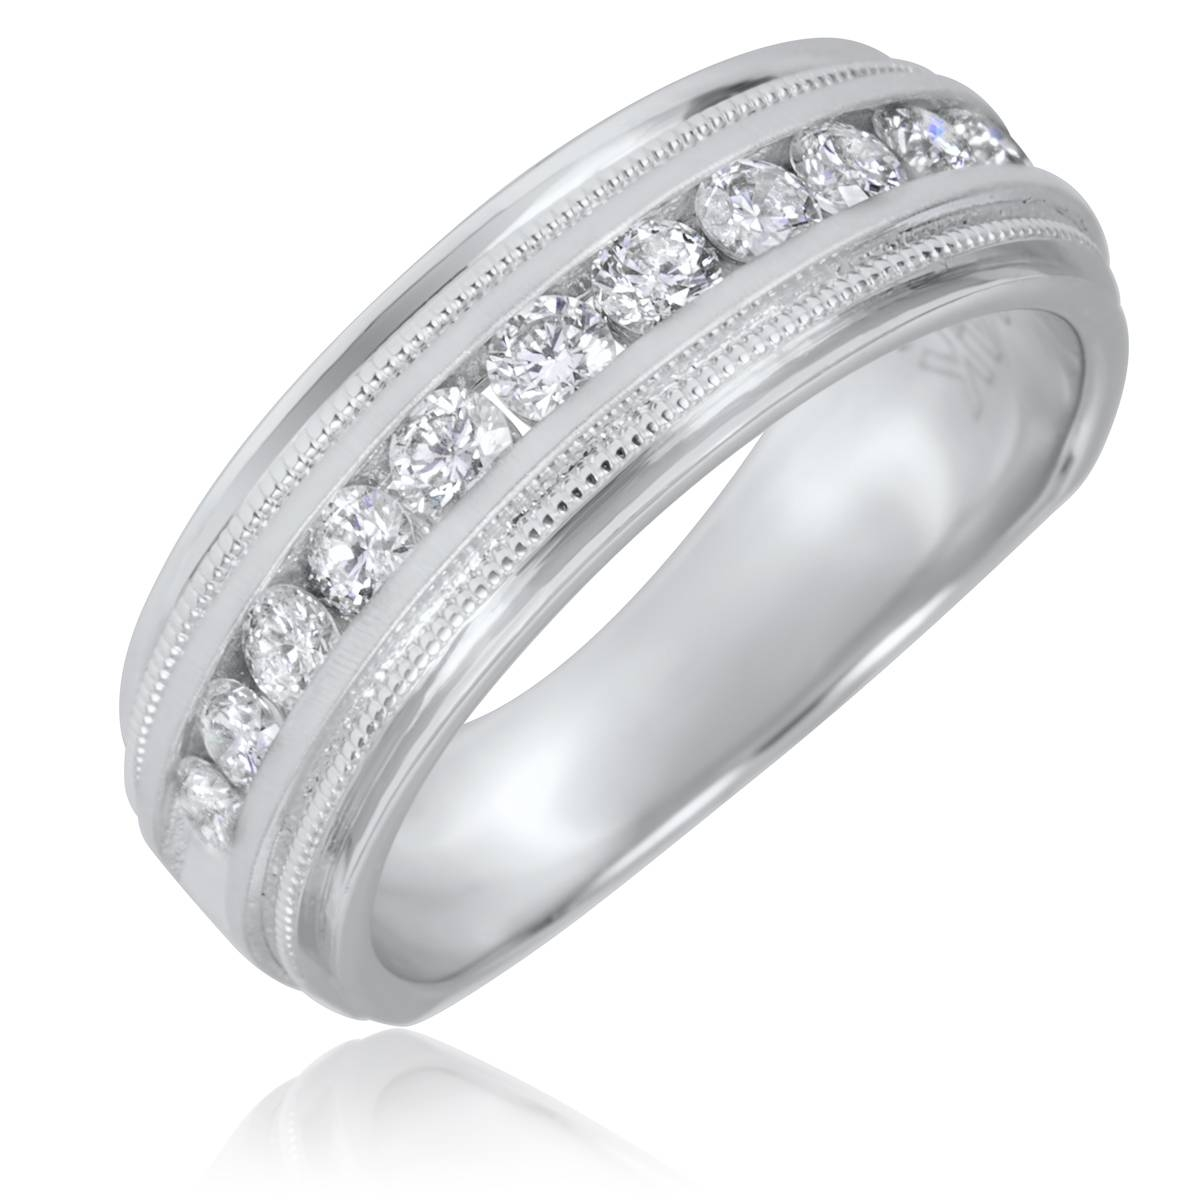 Wedding Rings : Mens White Gold Wedding Band Designs White Gold Throughout White Gold Mens Wedding Rings (View 13 of 15)